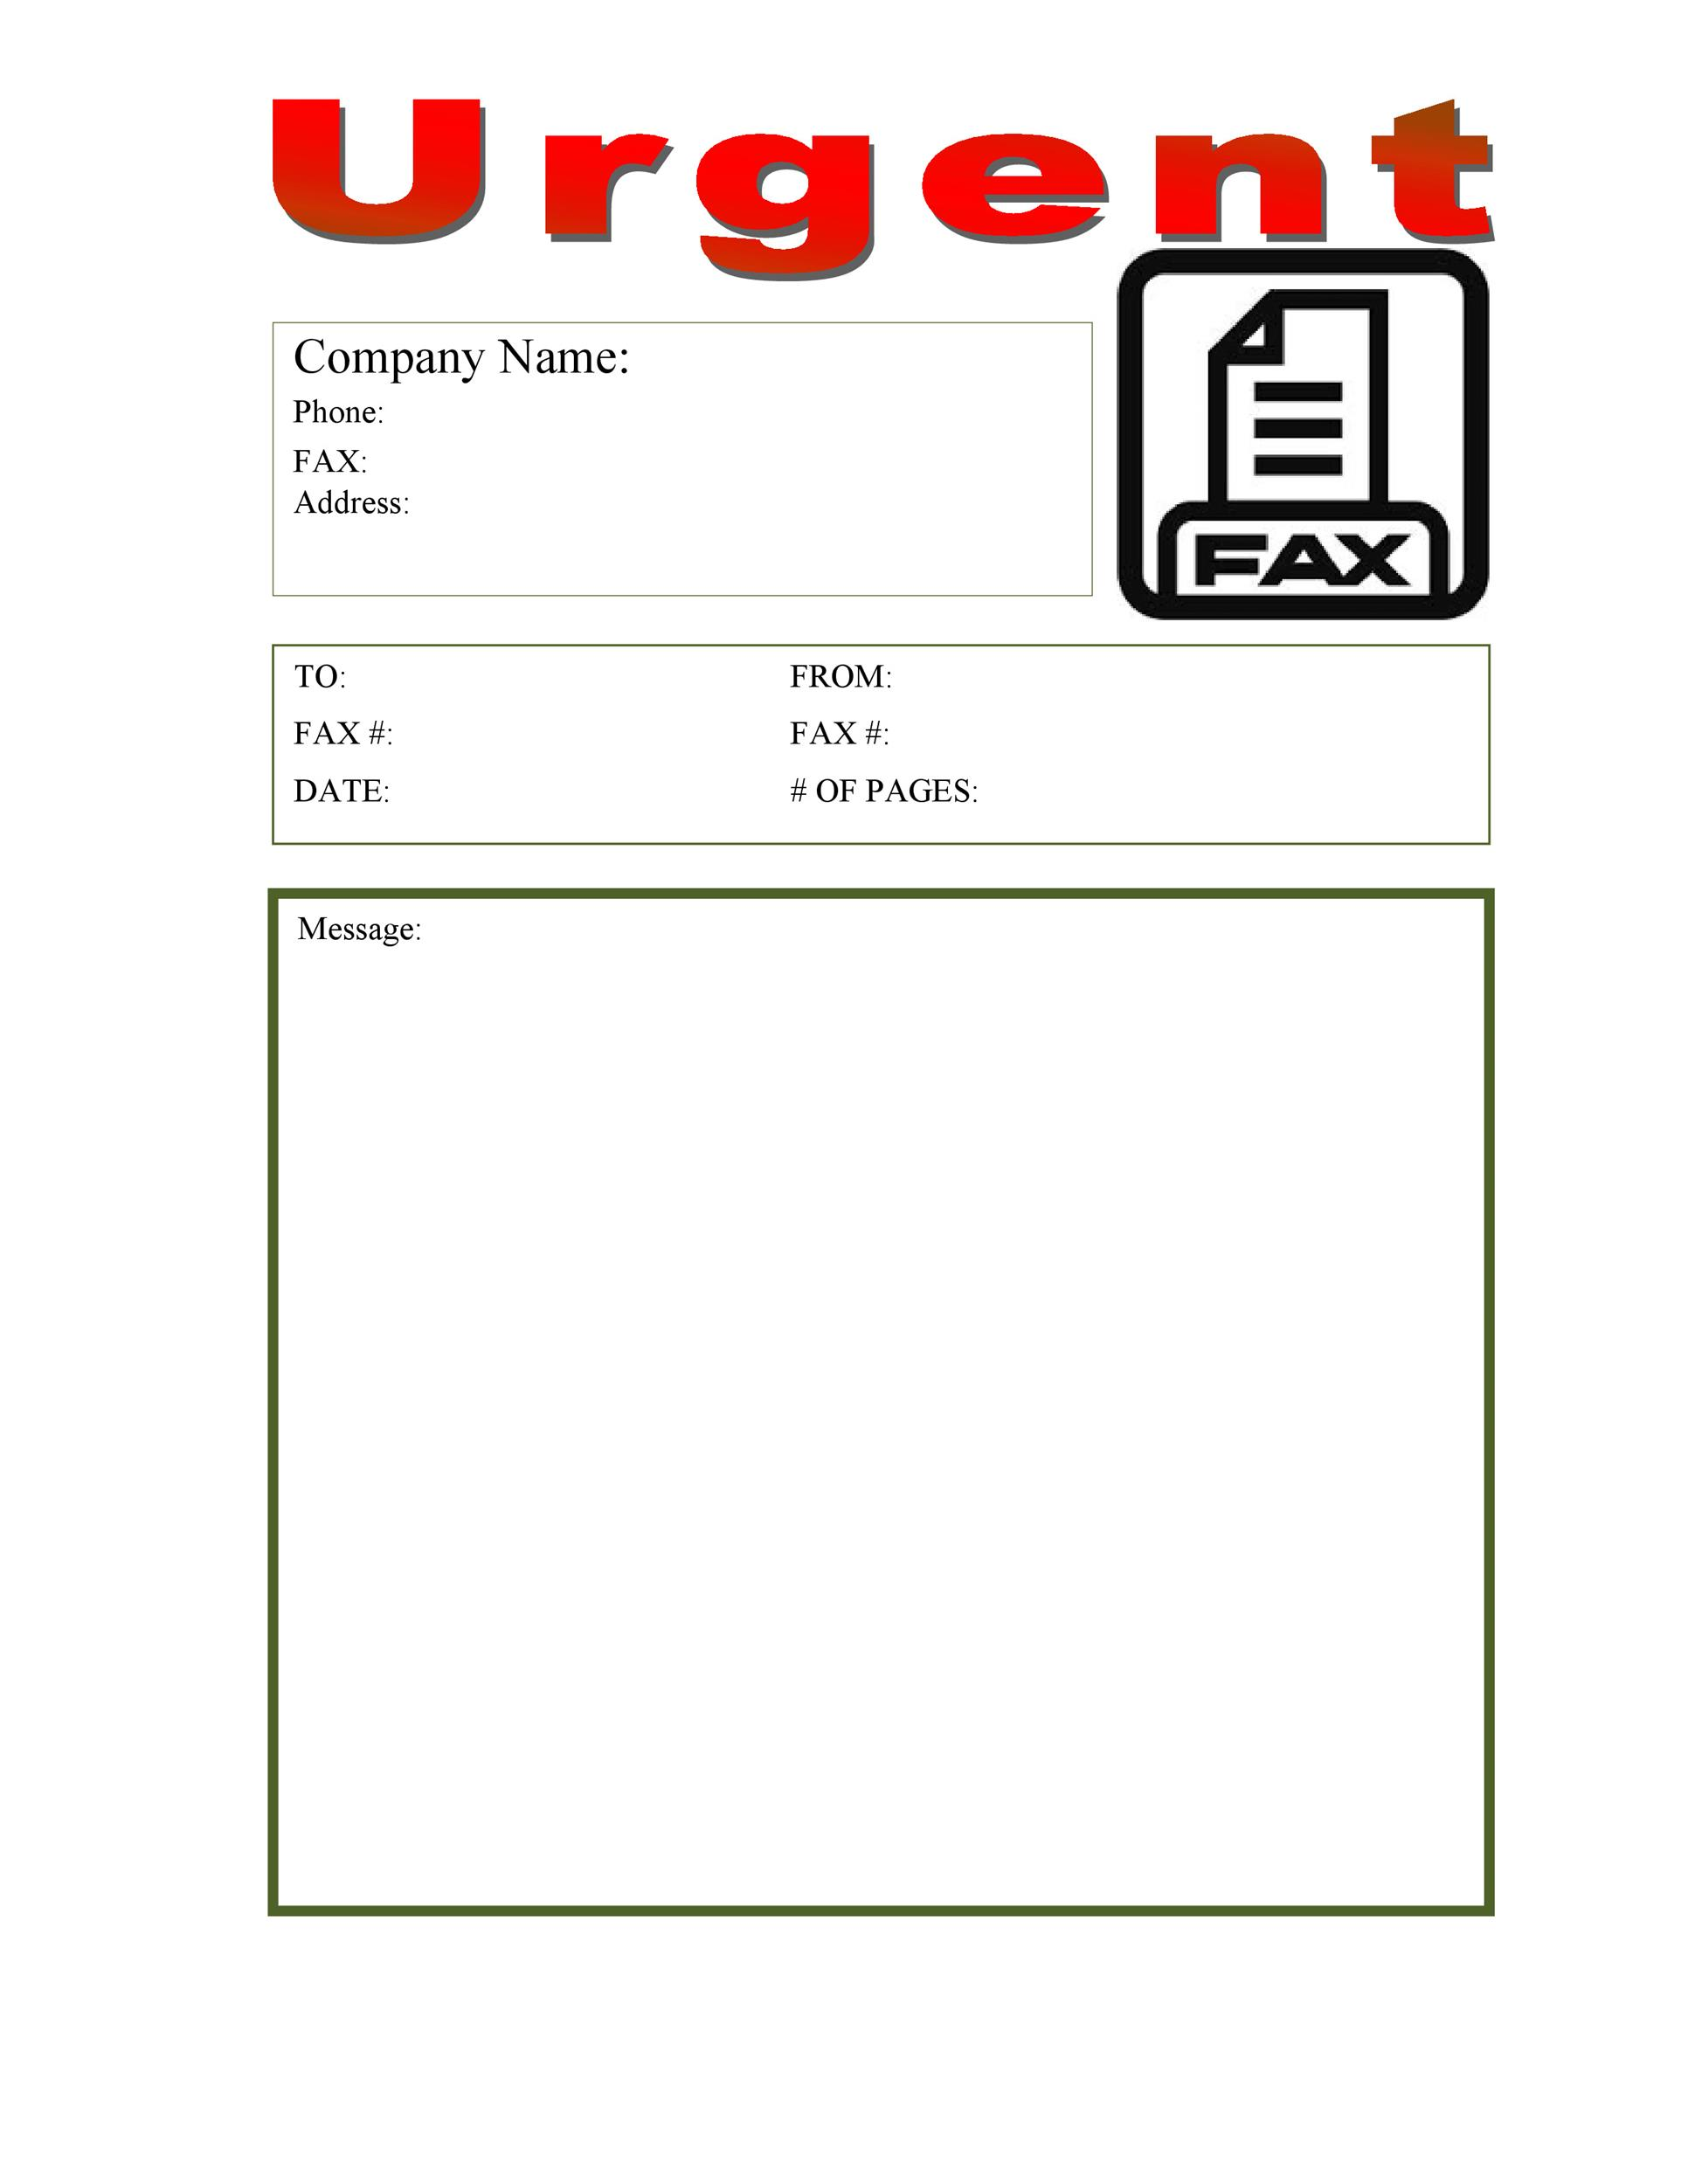 40 Printable Fax Cover Sheet Templates - Template Lab - sample urgent fax cover sheet